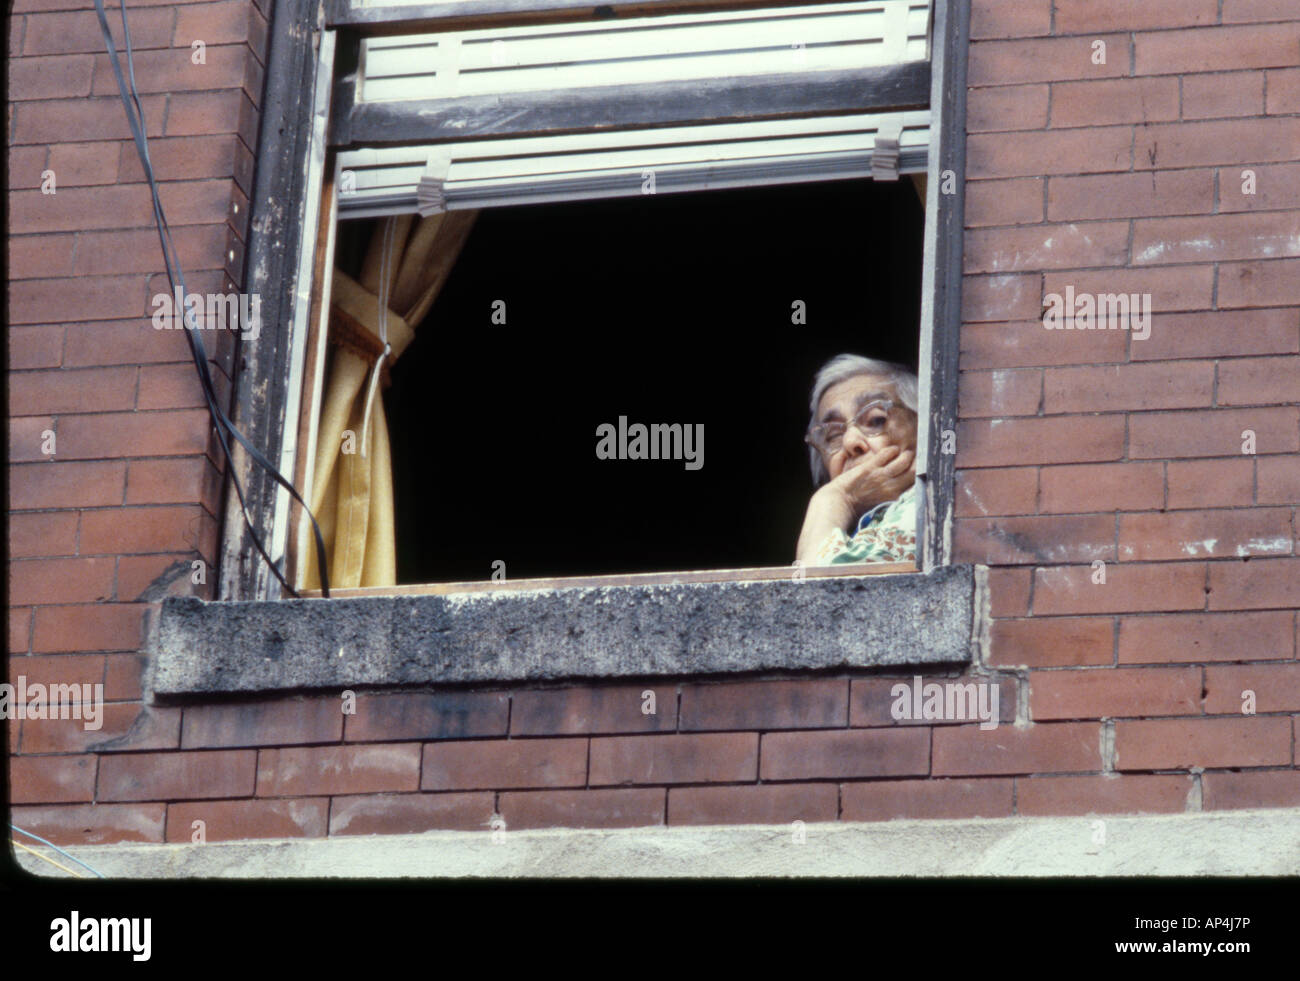 Brick Apartment Building Window elderly woman glances out an open window in an old brick apartment